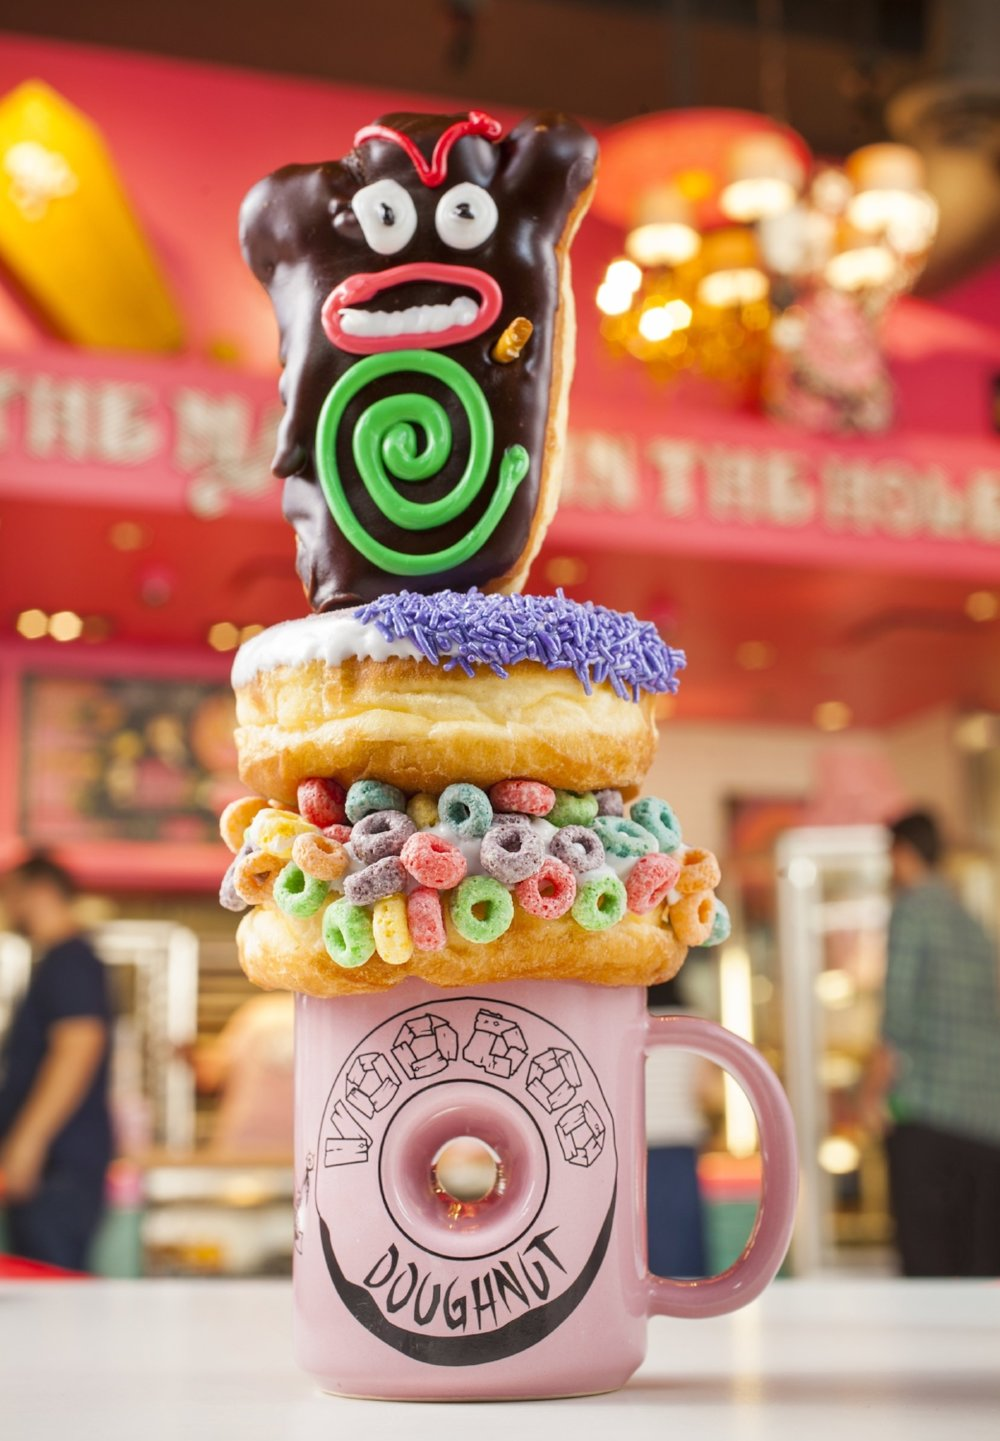 Voodoo Doll, Grape Ape, and The Loop doughnuts from Voodoo Doughnut. Copyright Universal Orlando Resort. All rights reserved.